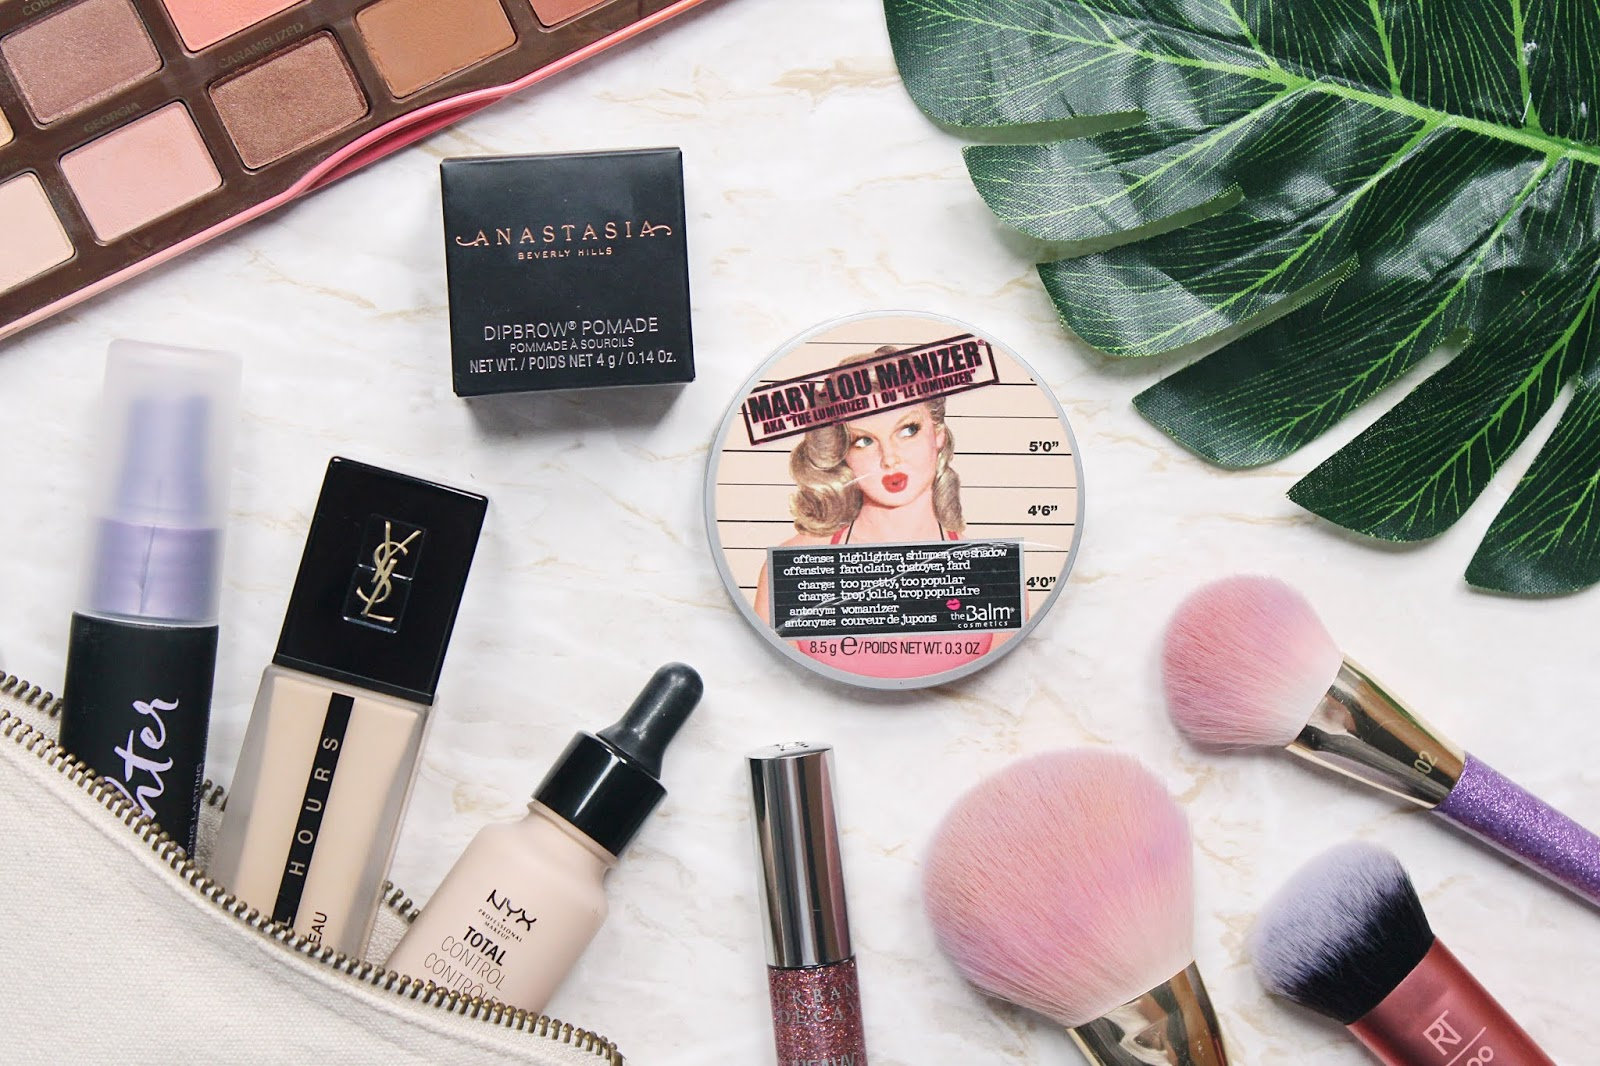 My Festival Beauty Essentials with Cosmetify